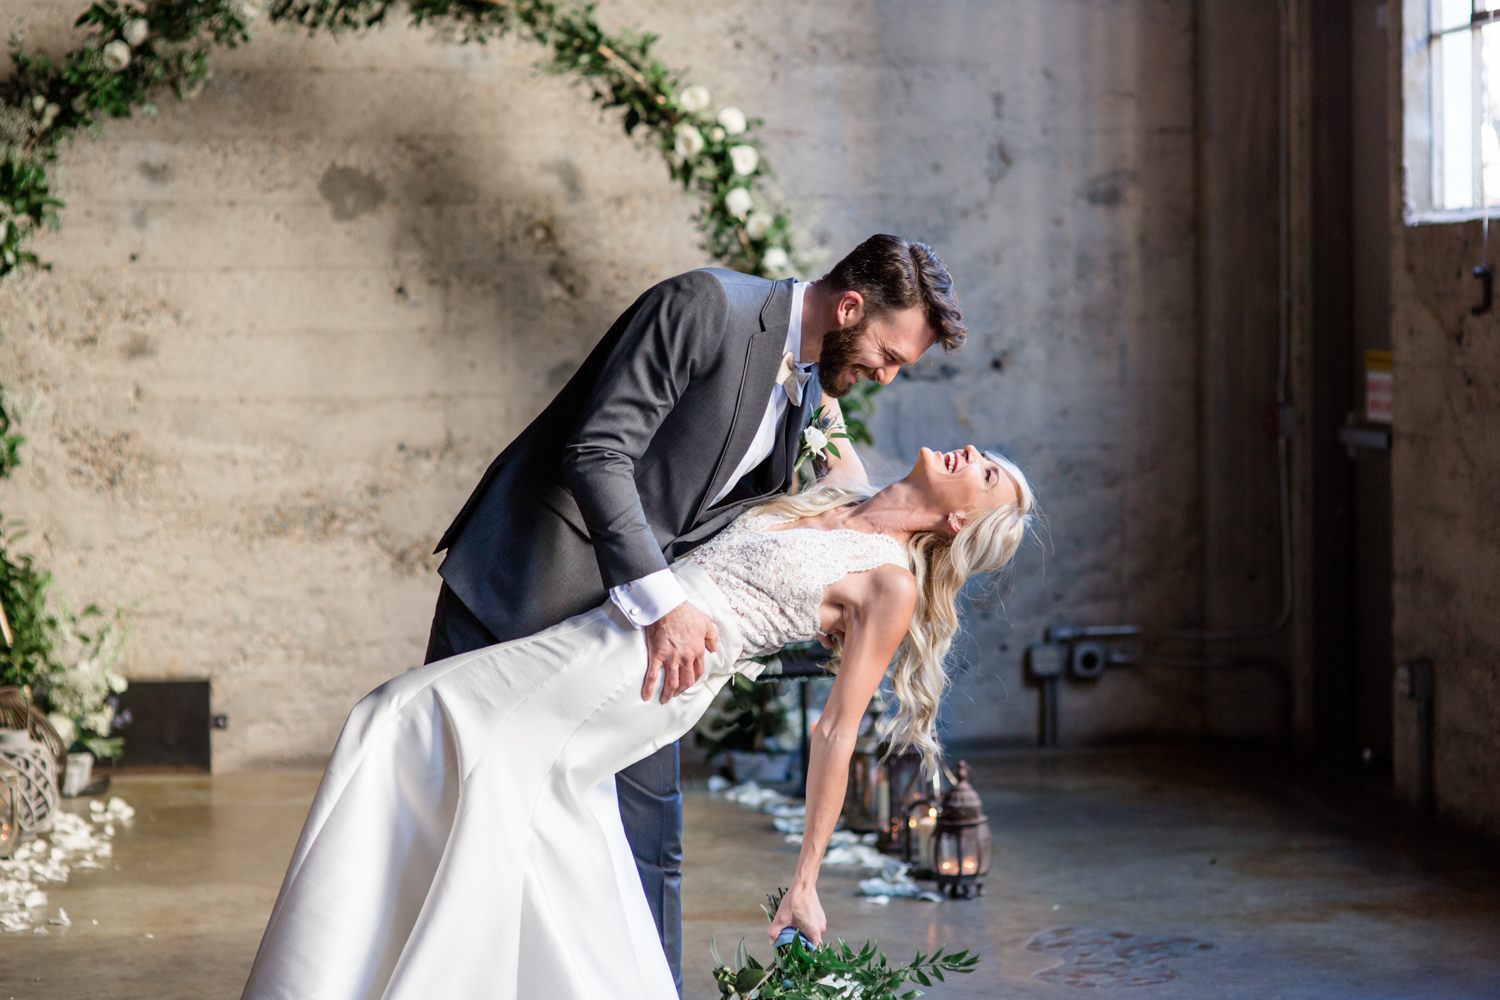 Our most popular services in the Downtown San Diego area are: Wedding DJ /MC,Wedding Guitarists, and Uplightingfor Receptions, Cocktail Hours, and Wedding Receptions -